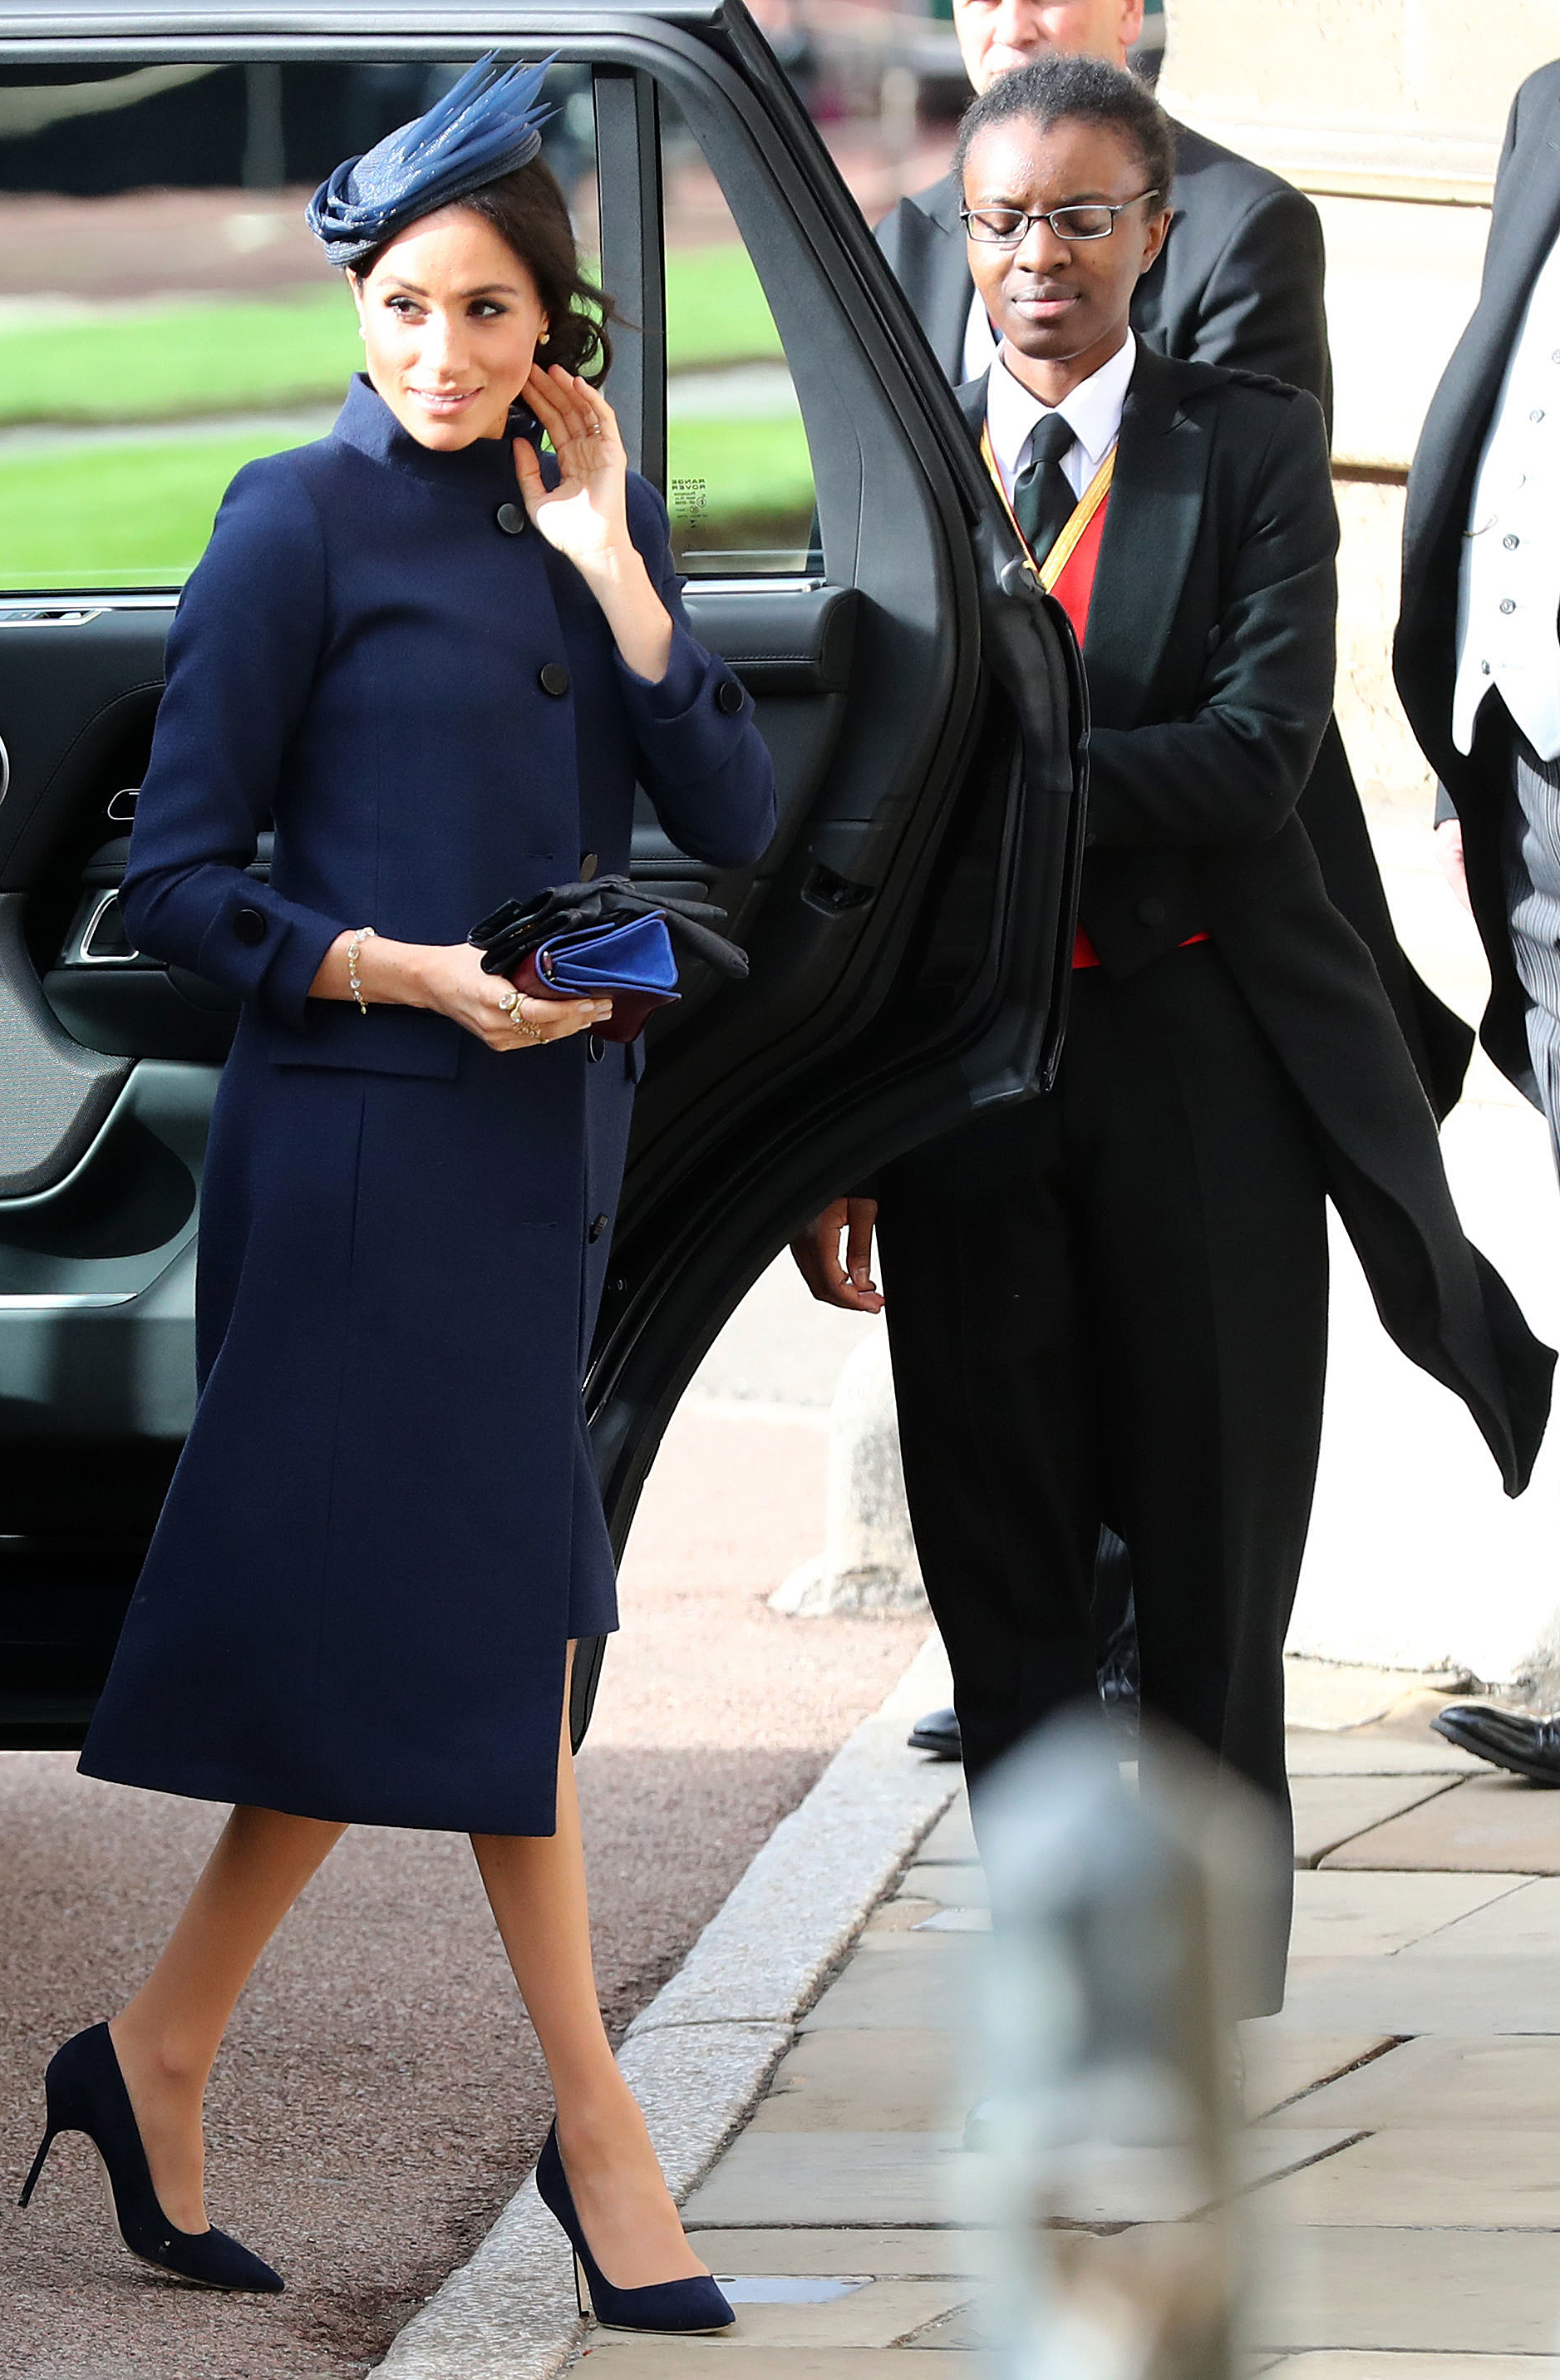 Meghan arrives to attend the wedding of Princess Eugenie of York to Jack Brooksbank at St George's Chapel,...